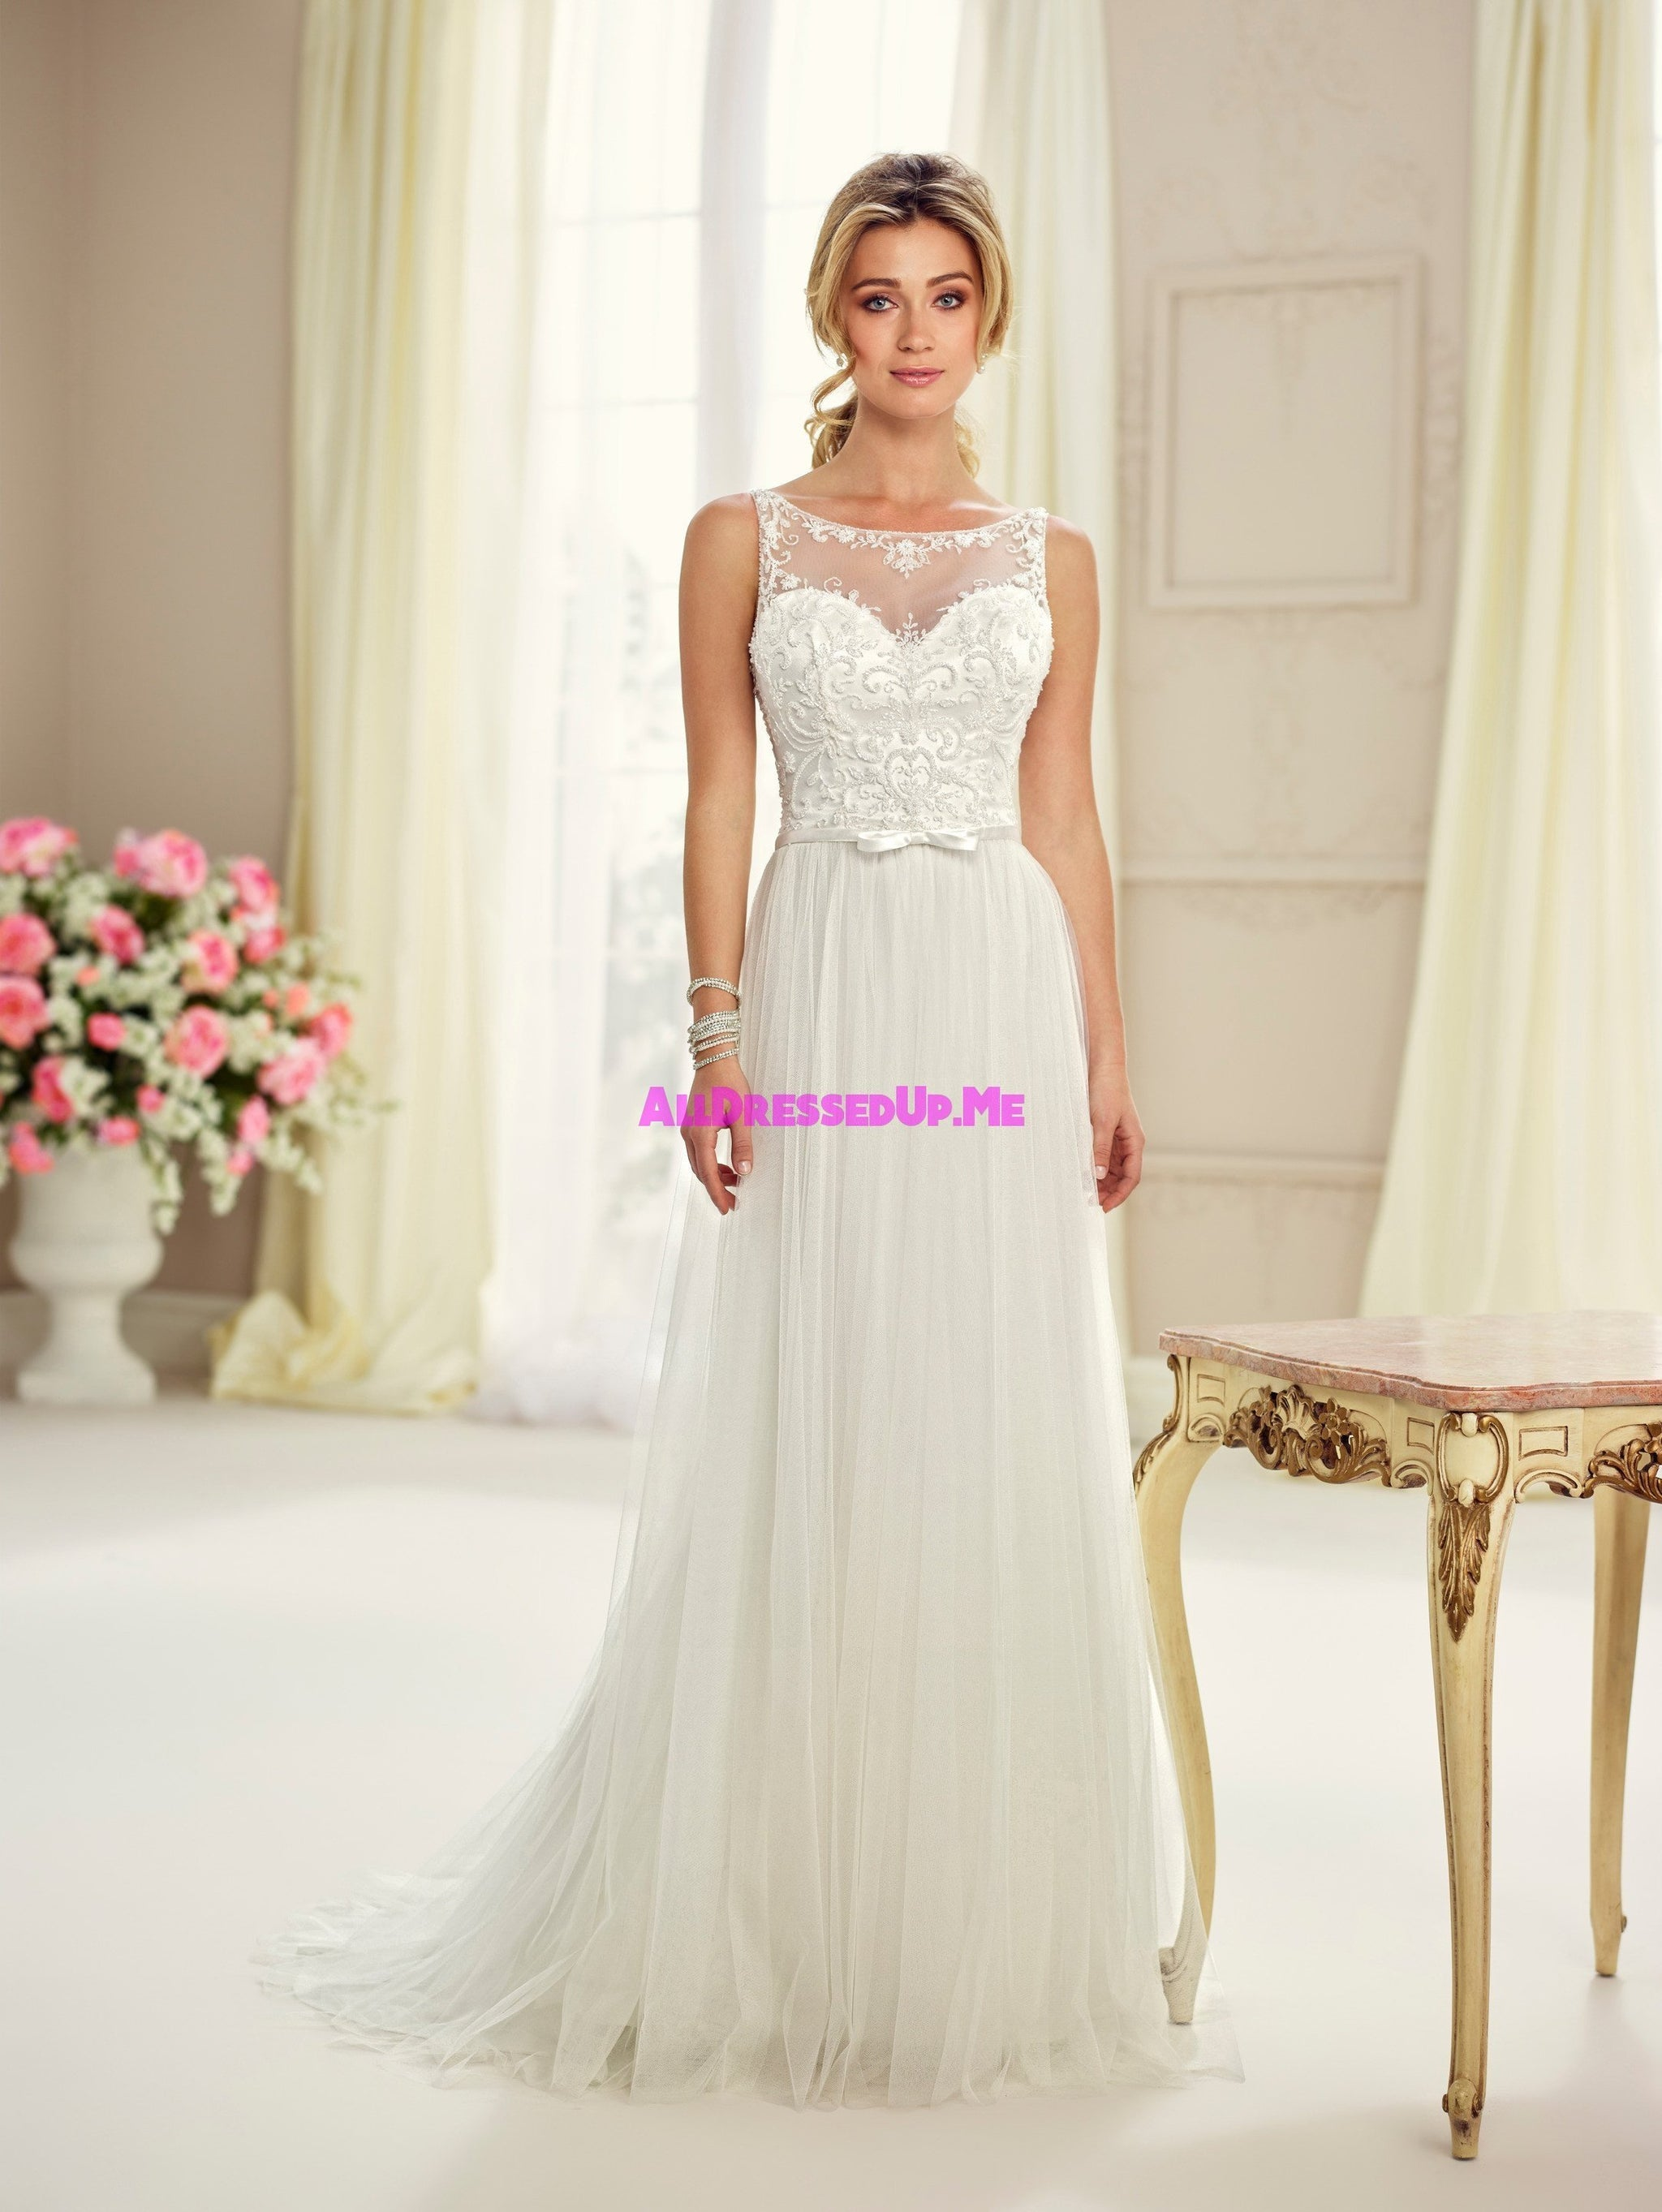 Enchanting 217103 All Dressed Up Bridal Gown All Dressed Up